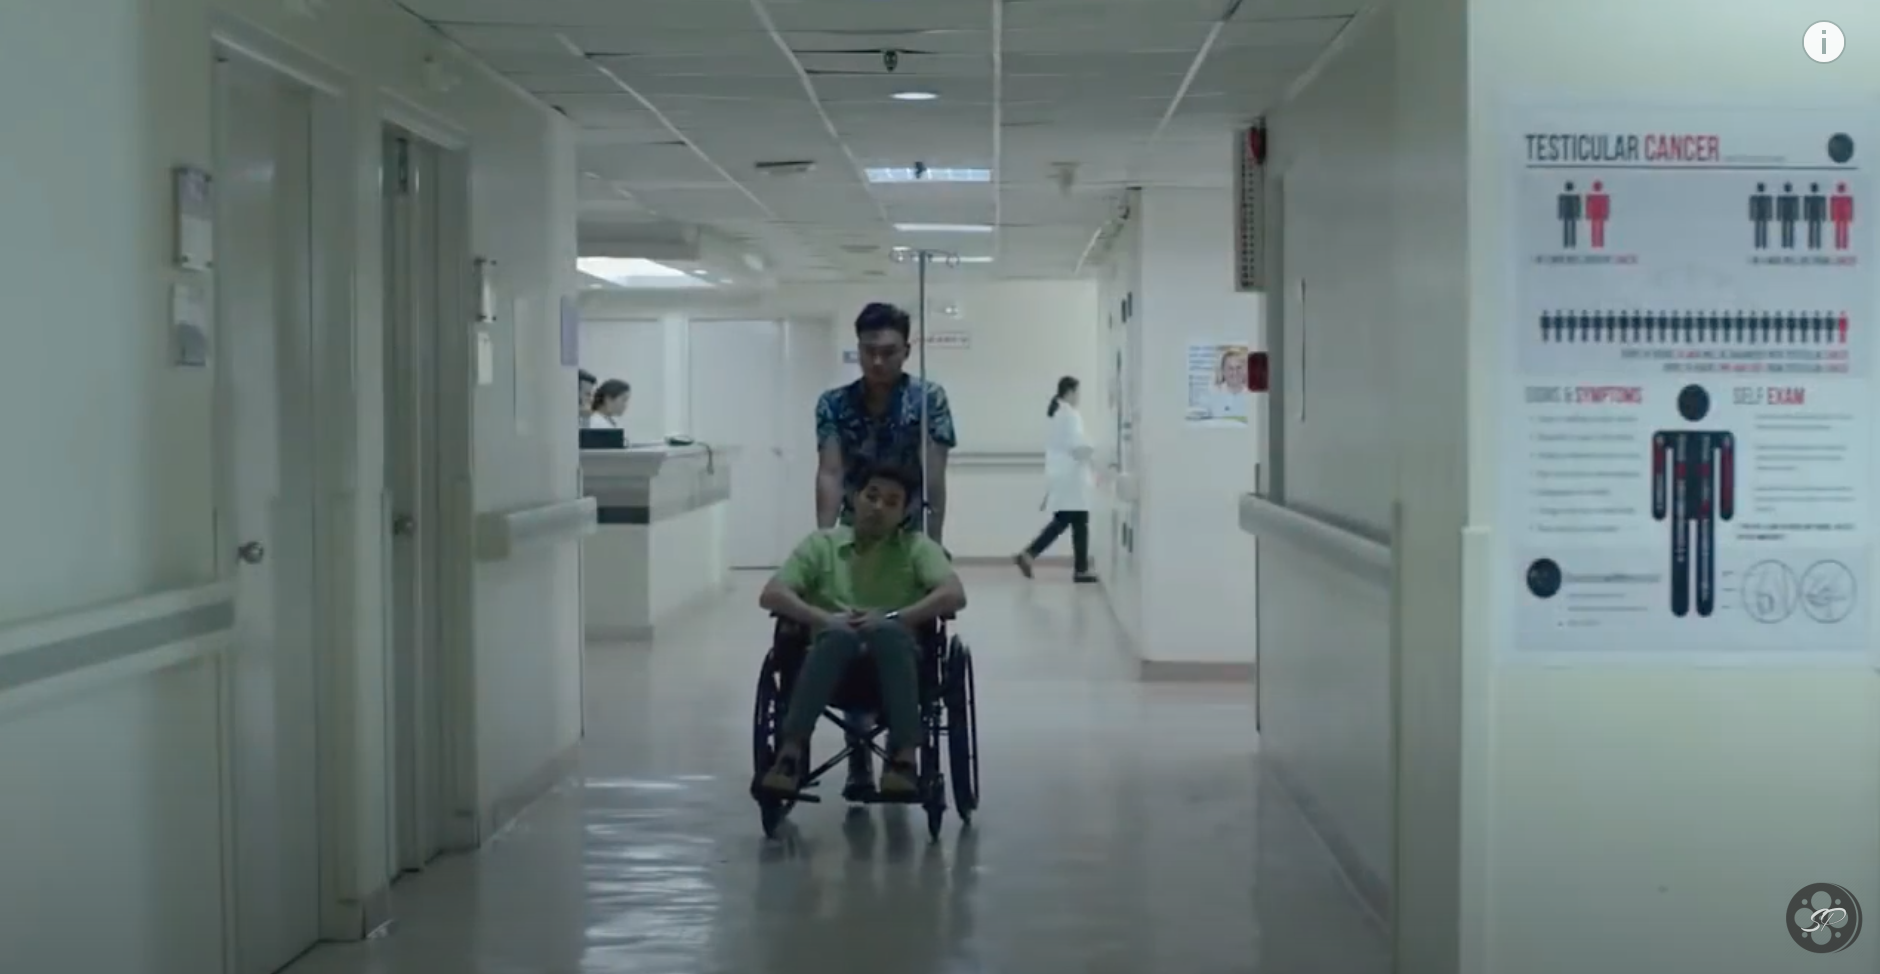 guy pushing another guy in a wheel chair in a hospital